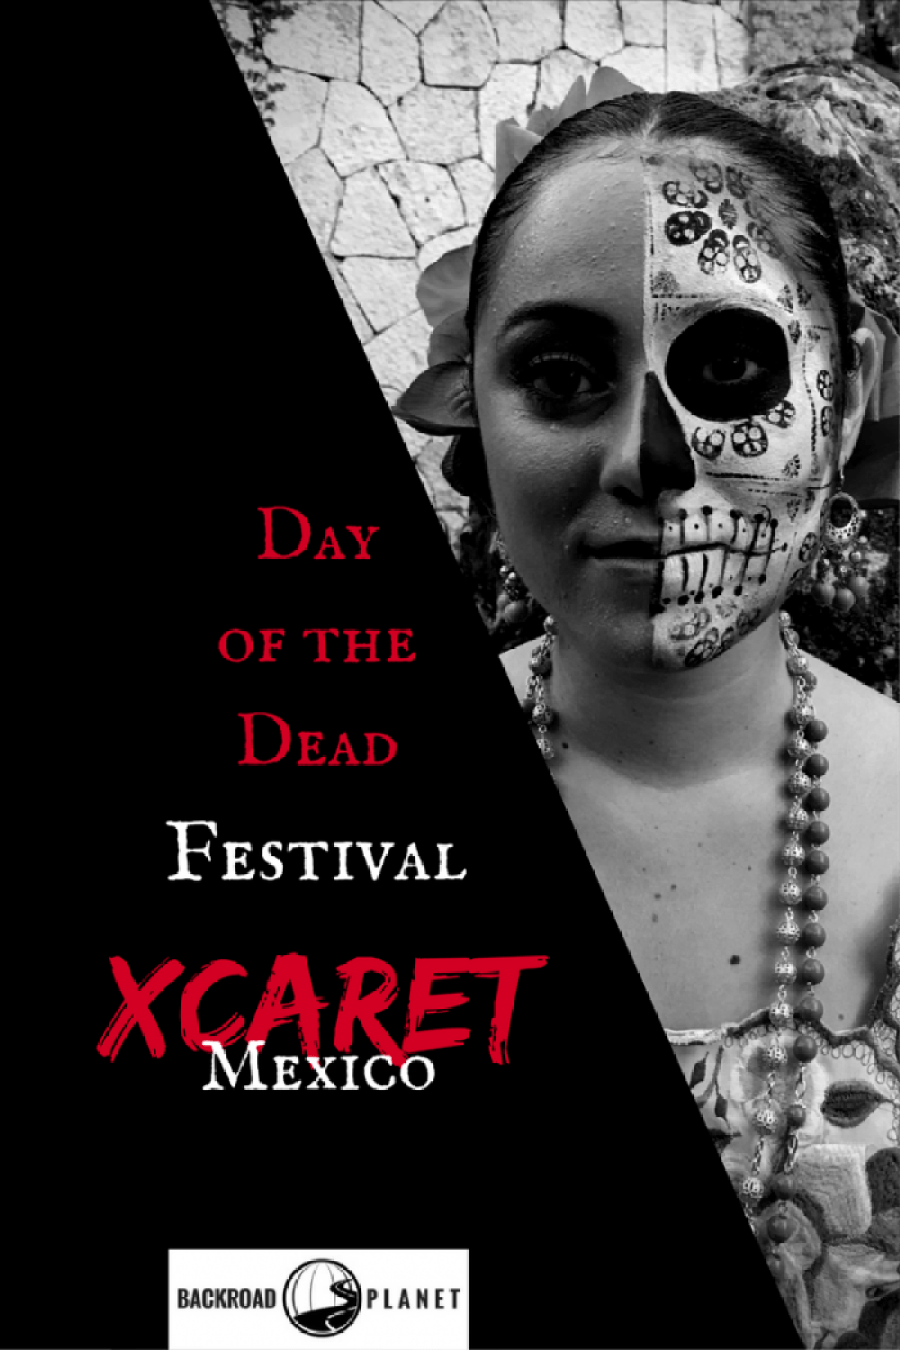 Day of the Dead 5 - Xcaret Day of the Dead Festival